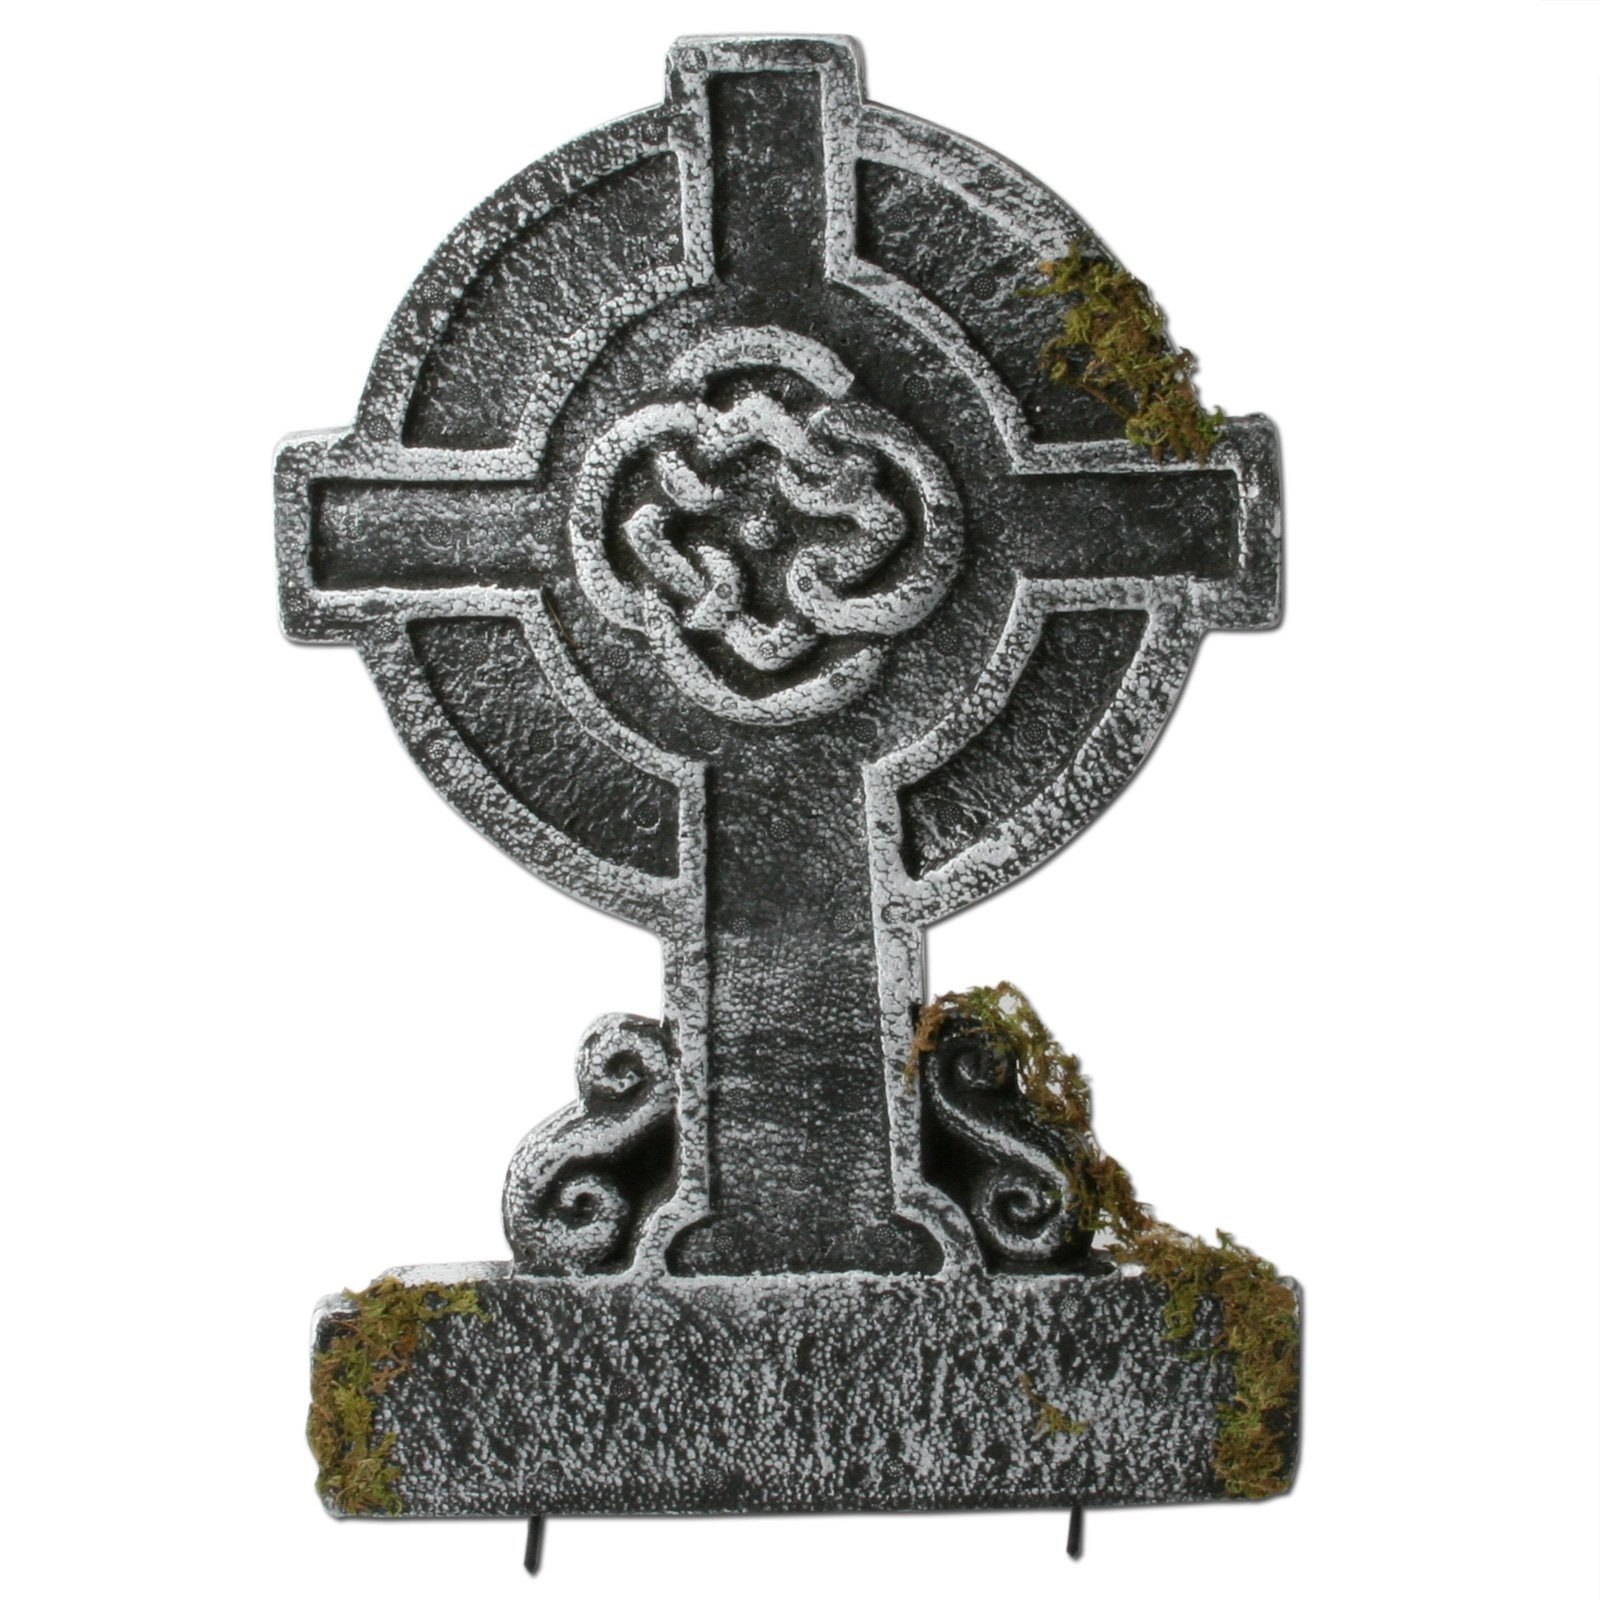 22 mossy celtic cross tombstone buycostumes